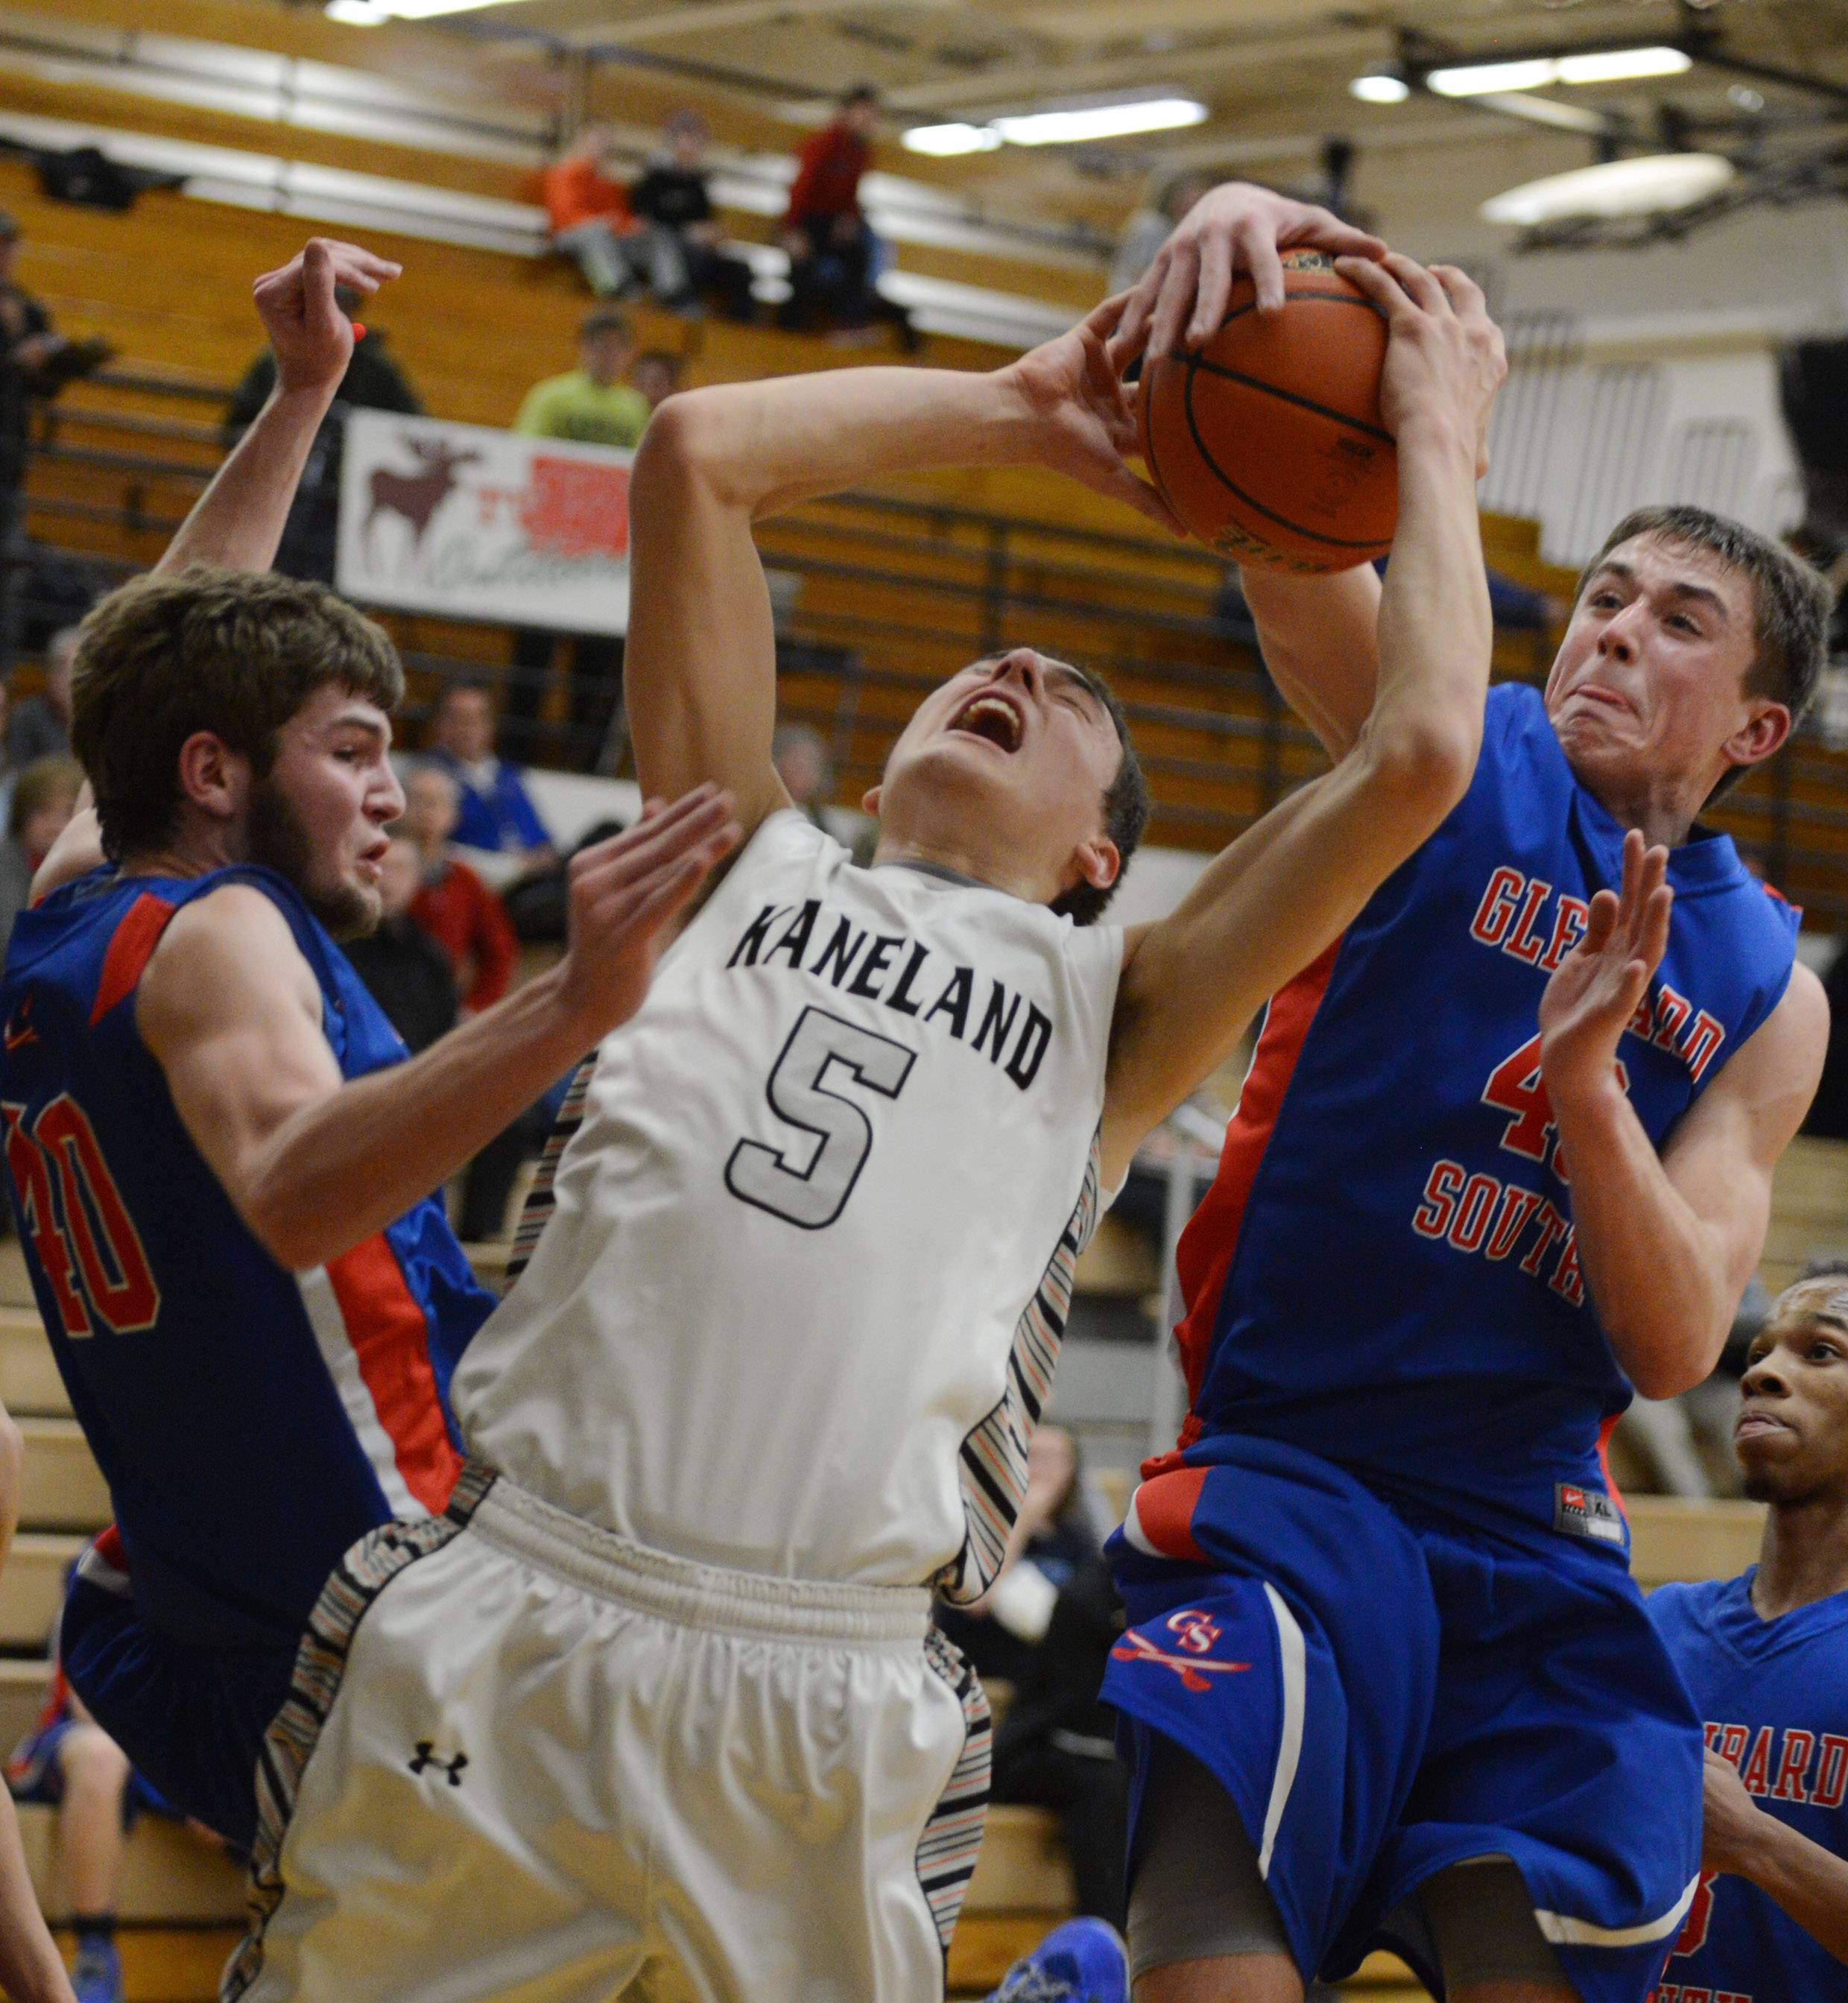 Kaneland's John Pruett (5) is fouled by Glenbard South's Billy Bair (42) during Tuesday's regional action at Kaneland.